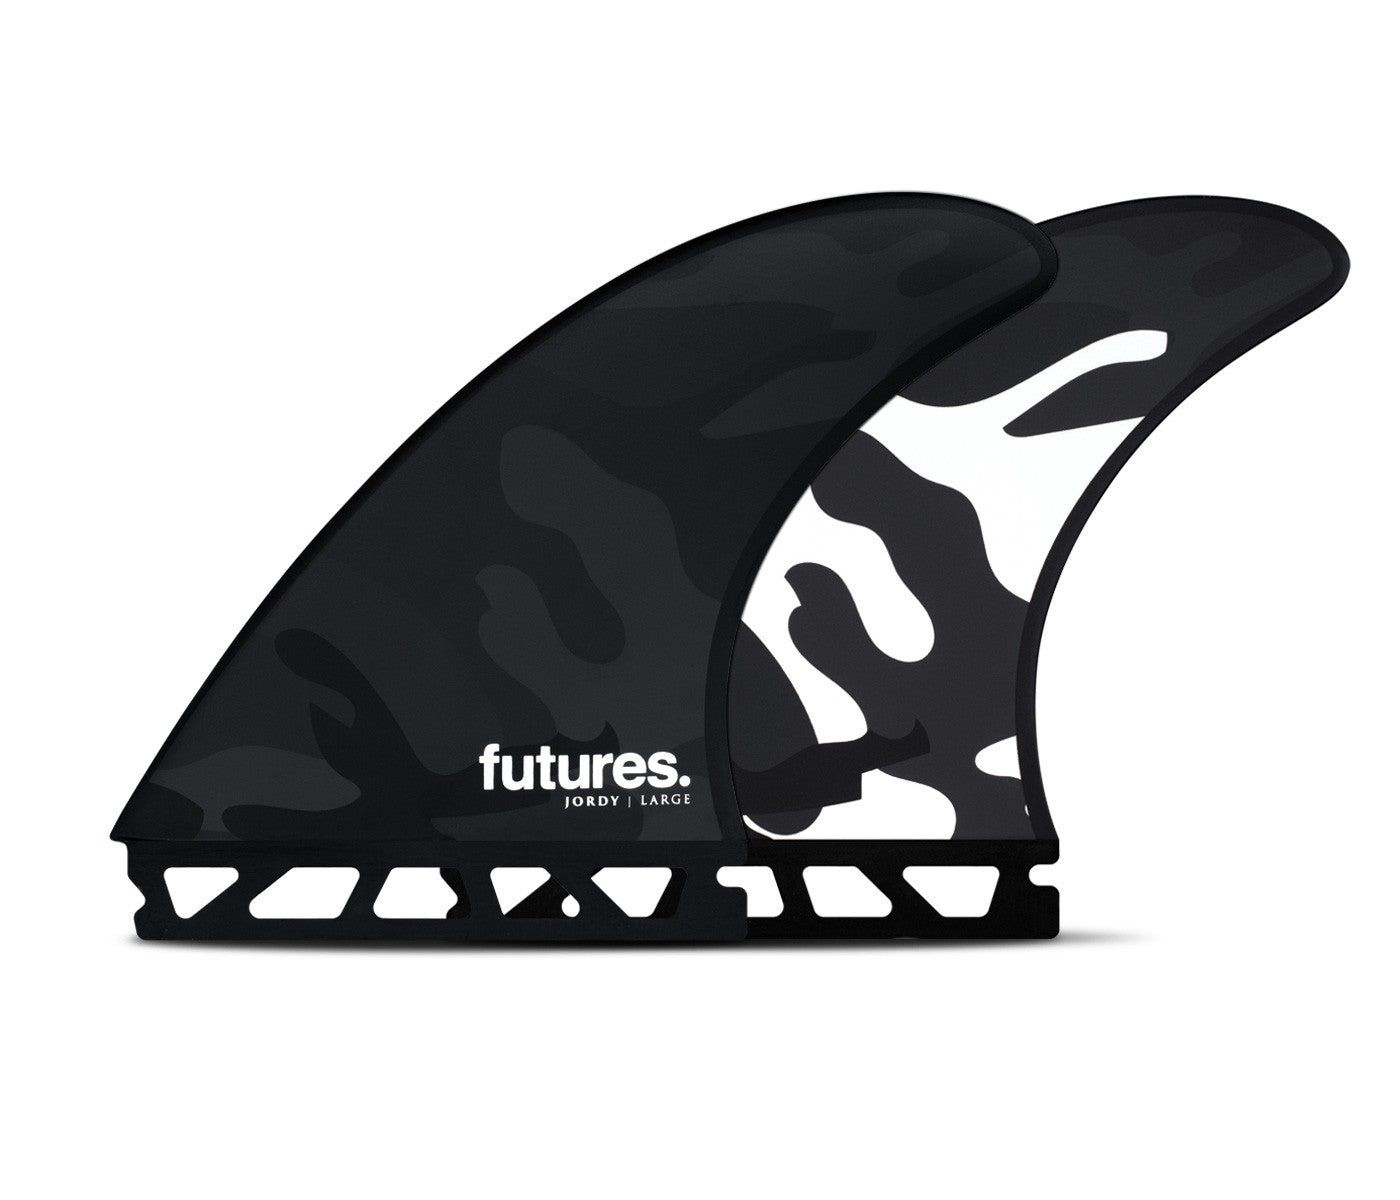 FUTURES JORDY LARGE HC THRUSTER BLACK WHITE CAMO